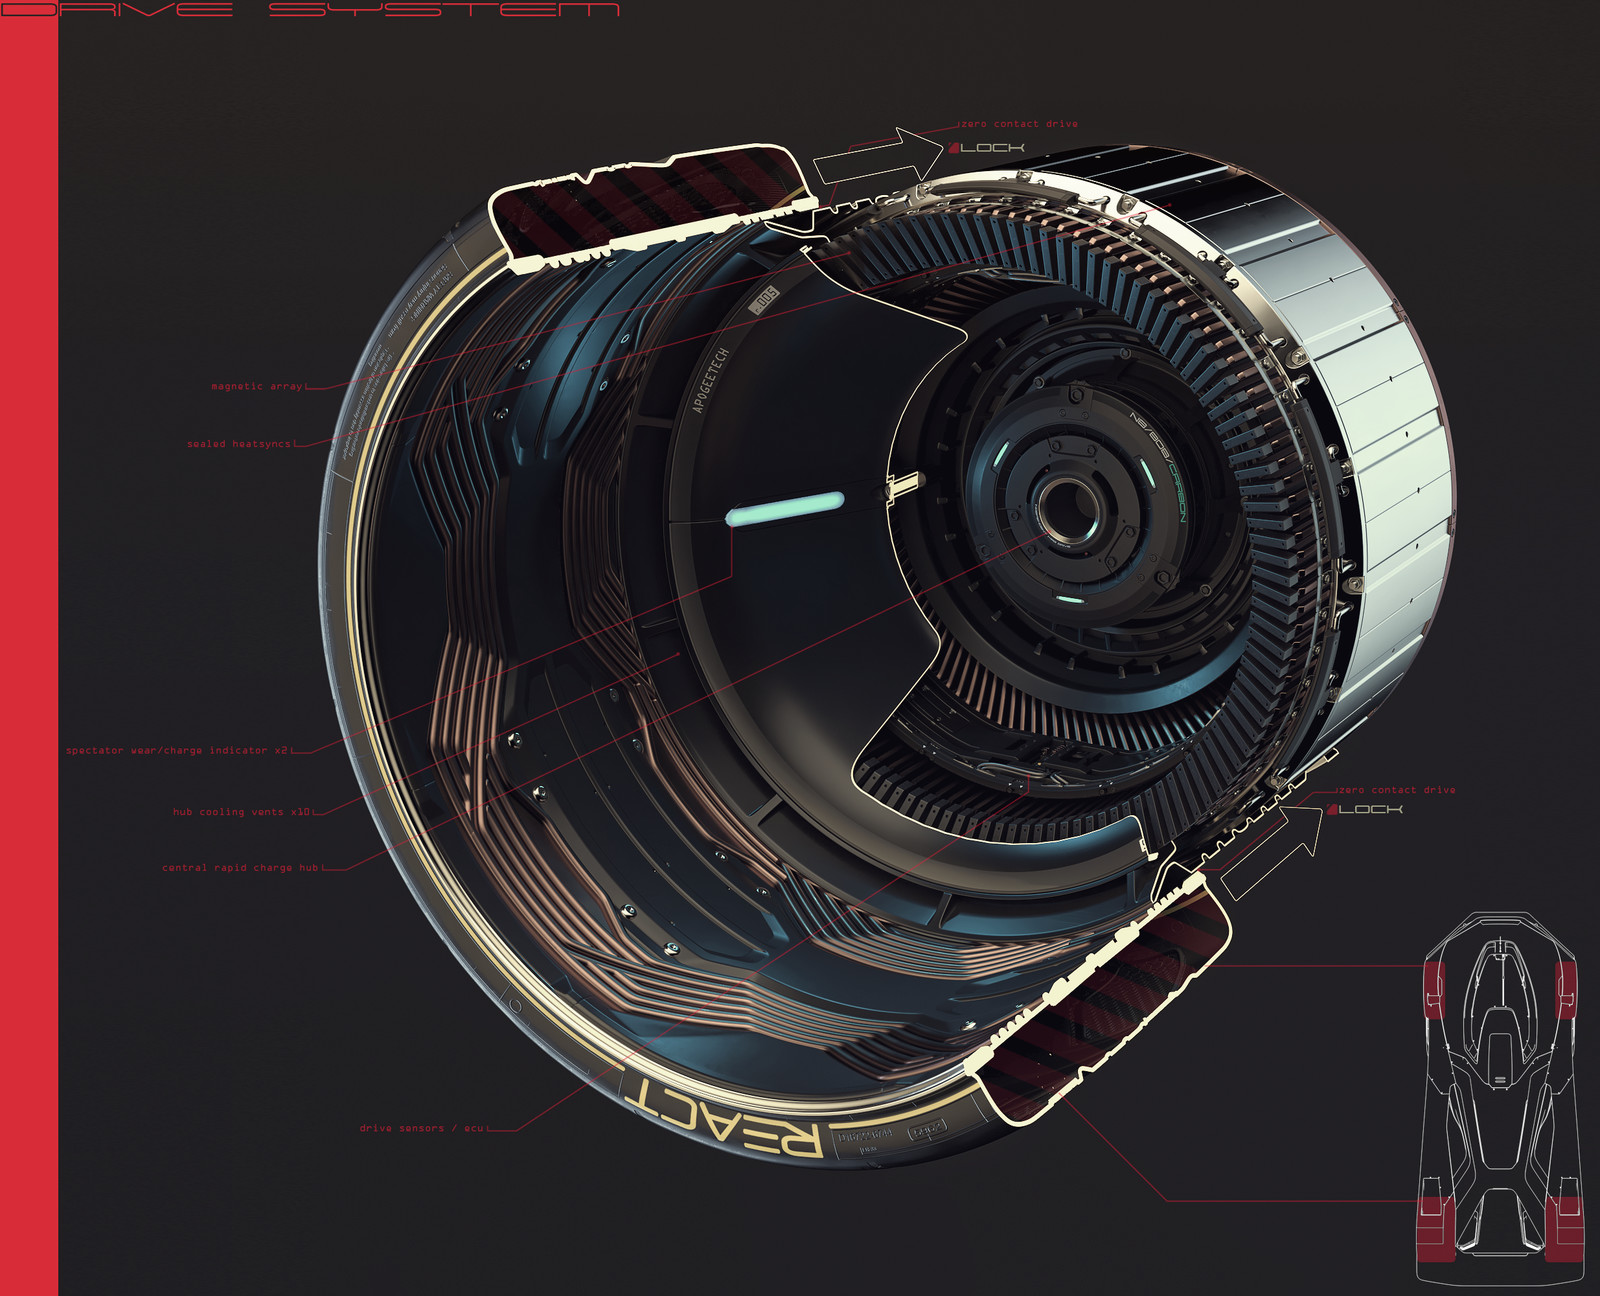 Central hub never moves, drive is delivered to a removable rim with tire attached, once power is delivered, the rim 'floats' within its own magnetic field, resulting in frictionless drive being delivered.